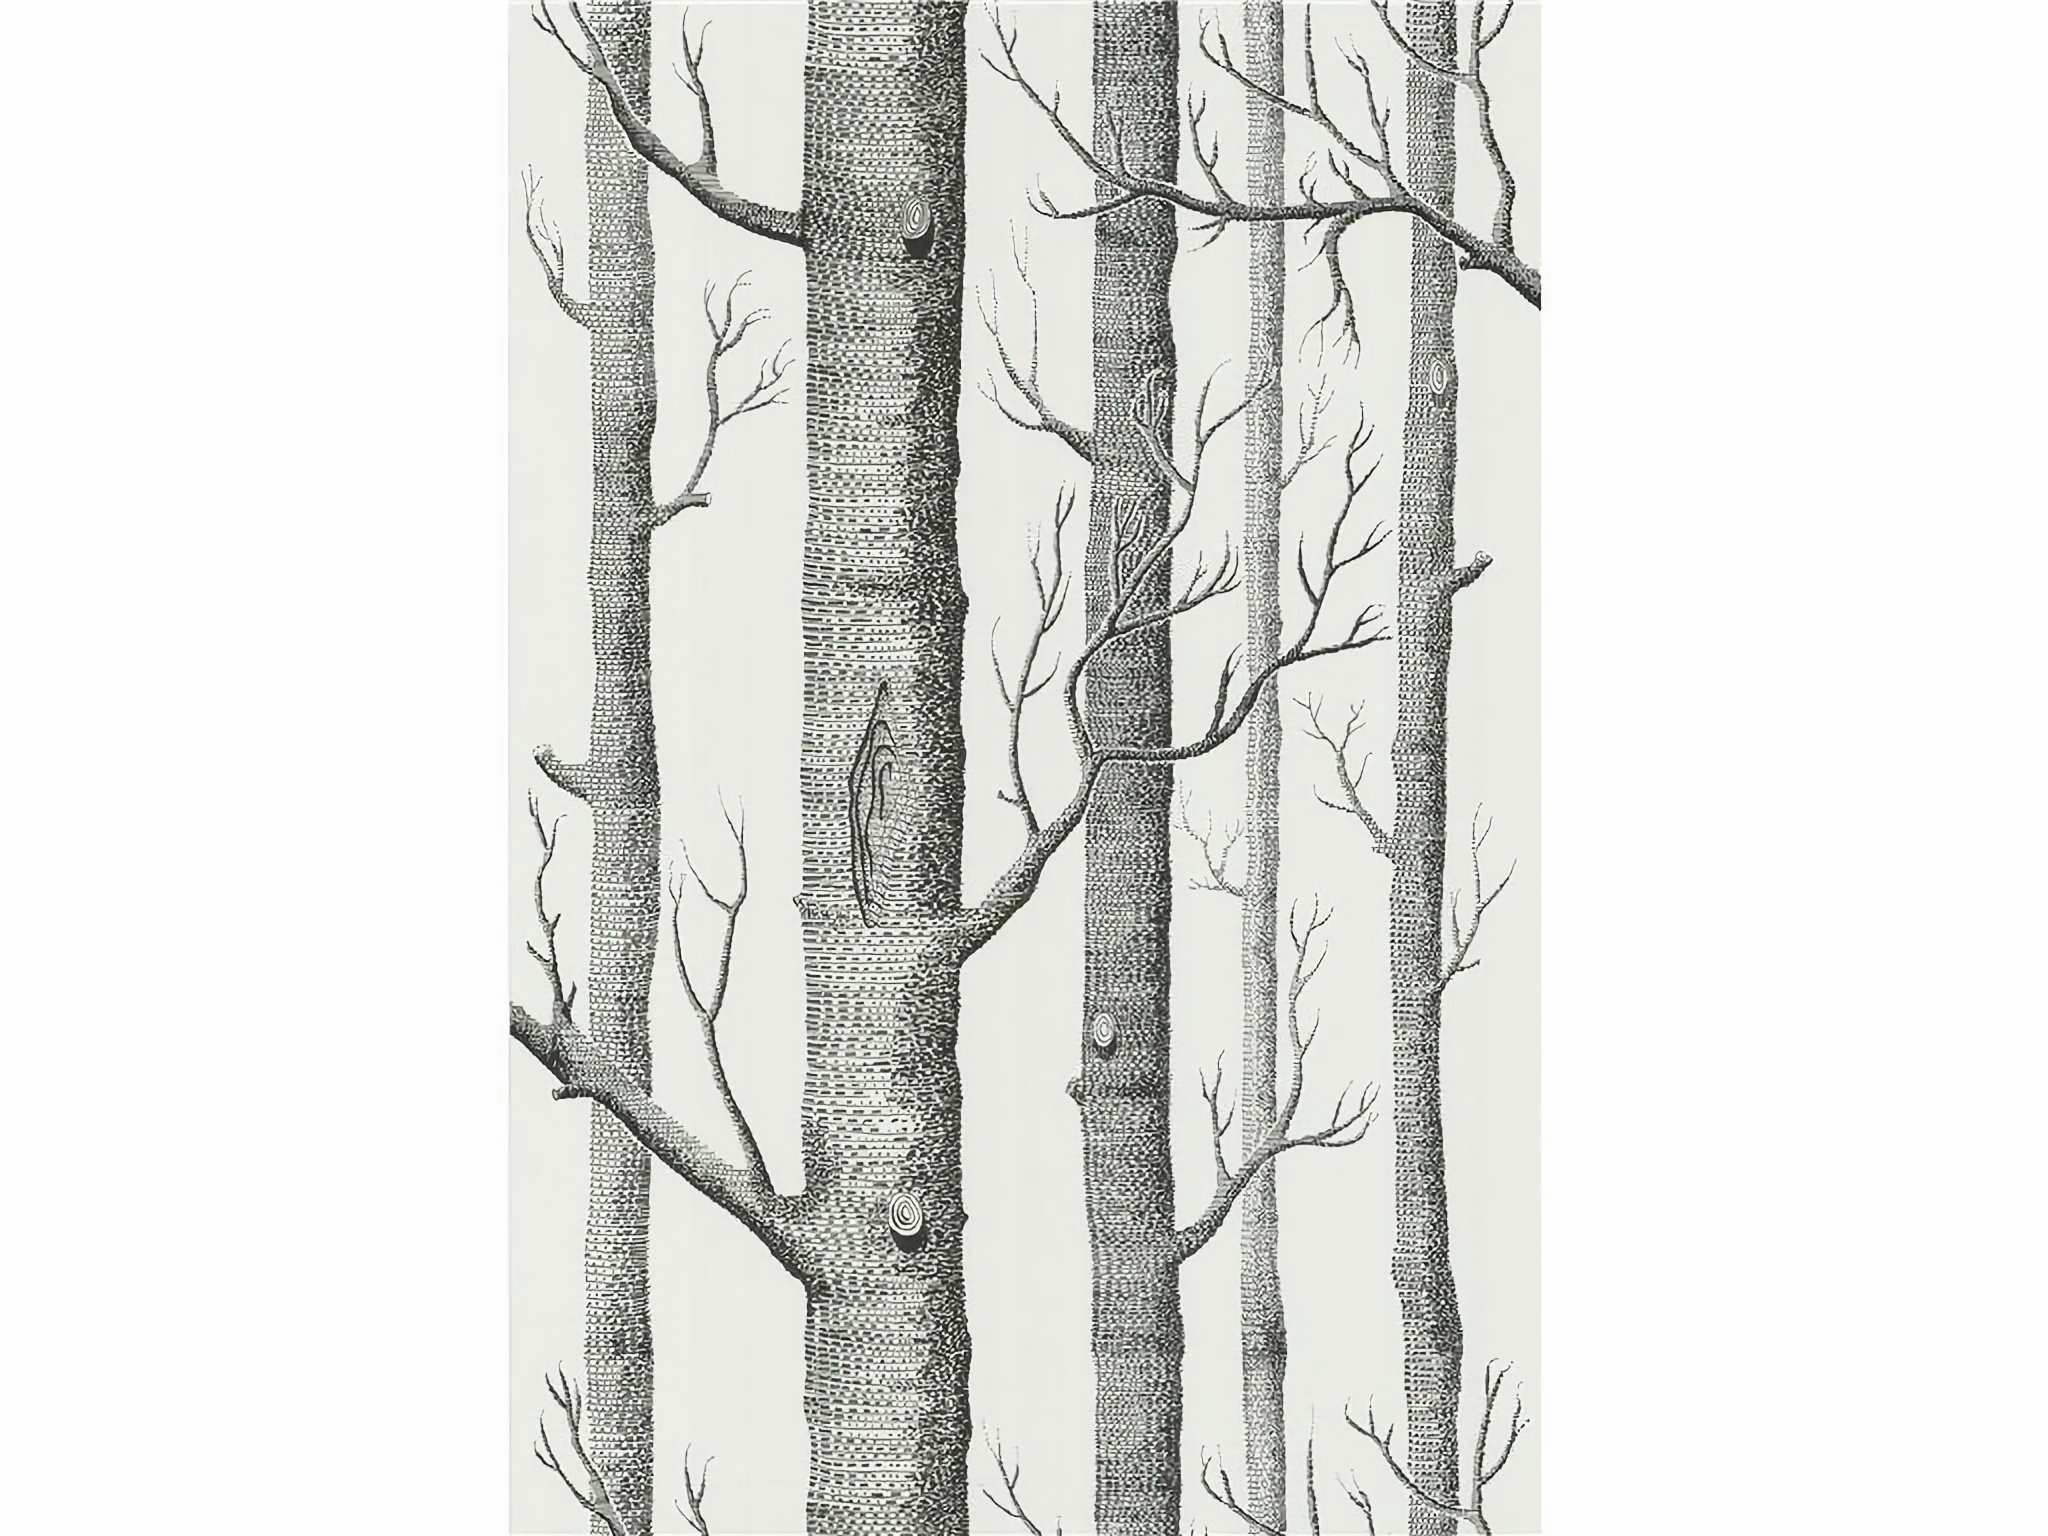 Cole And Son Woods wallpaper / woods wallpaper in onyx/whitecole & son